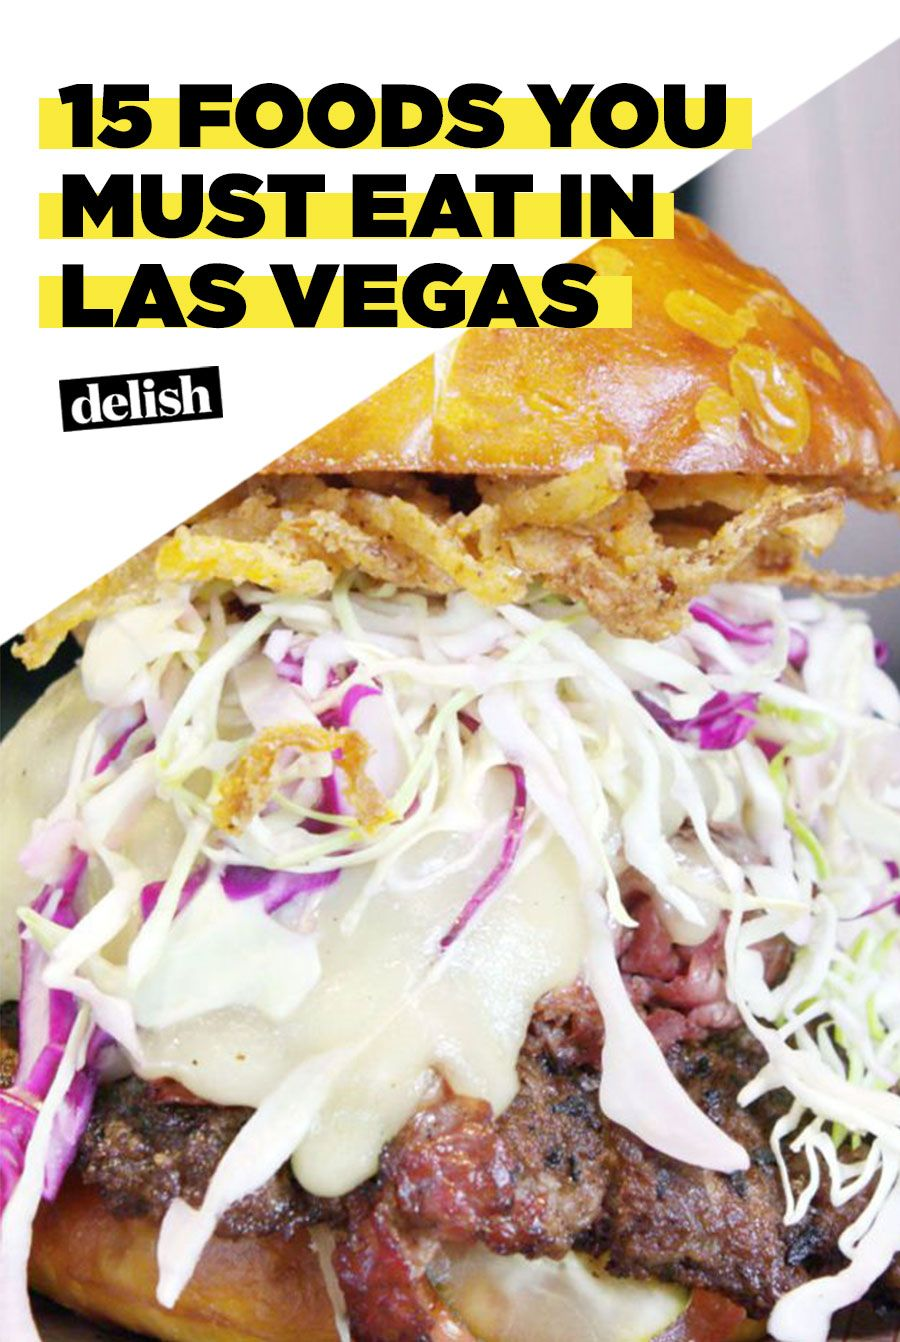 The 15 Foods You Can T Leave Vegas Without Trying Las Vegas Food Las Vegas Eats Vegas Food